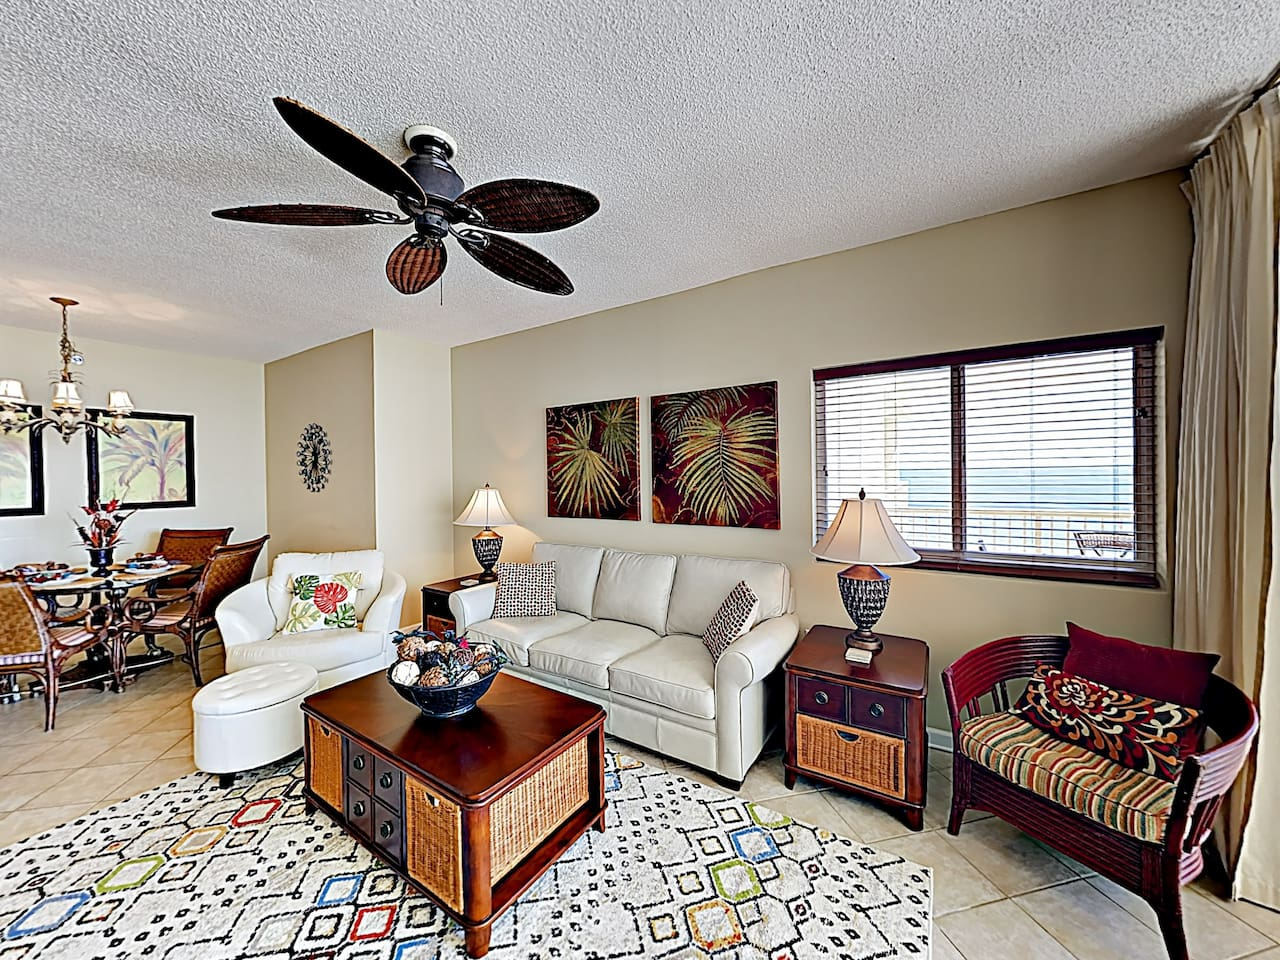 Welcome to The Beach Club! This condo is professionally managed by TurnKey Vacation Rentals.